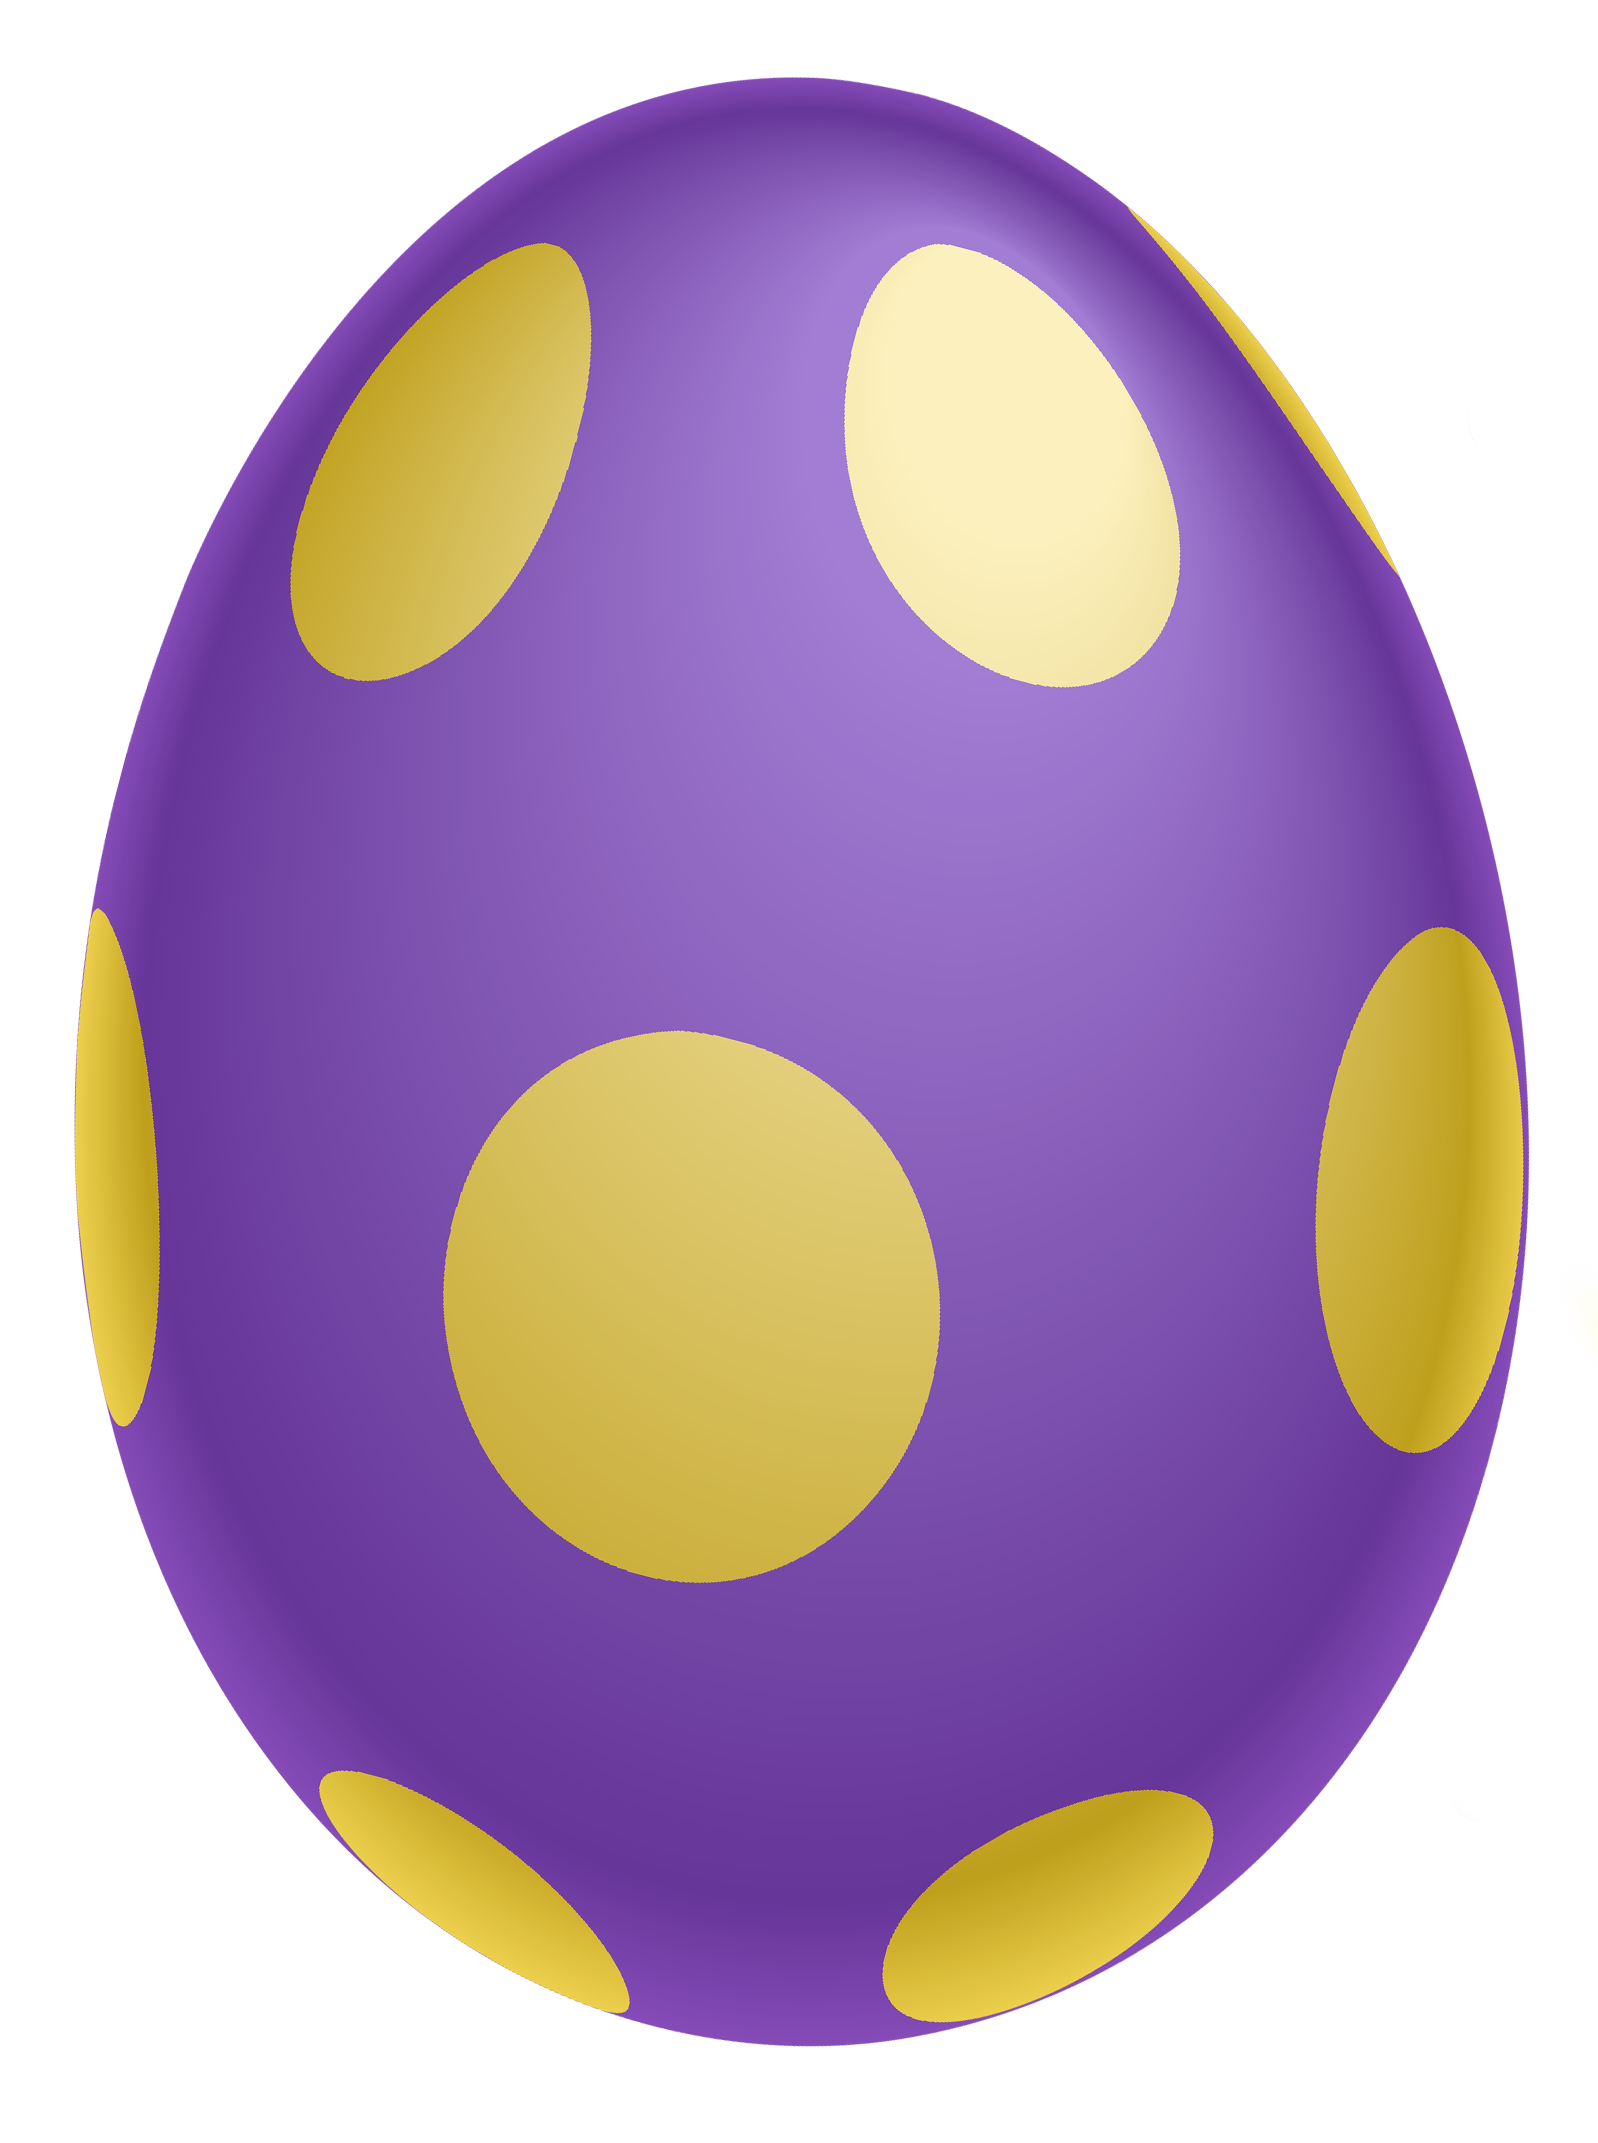 Easter Eggs Png Transparent Images Png All Easter Eggs Easter Egg Pictures Easter Egg Painting